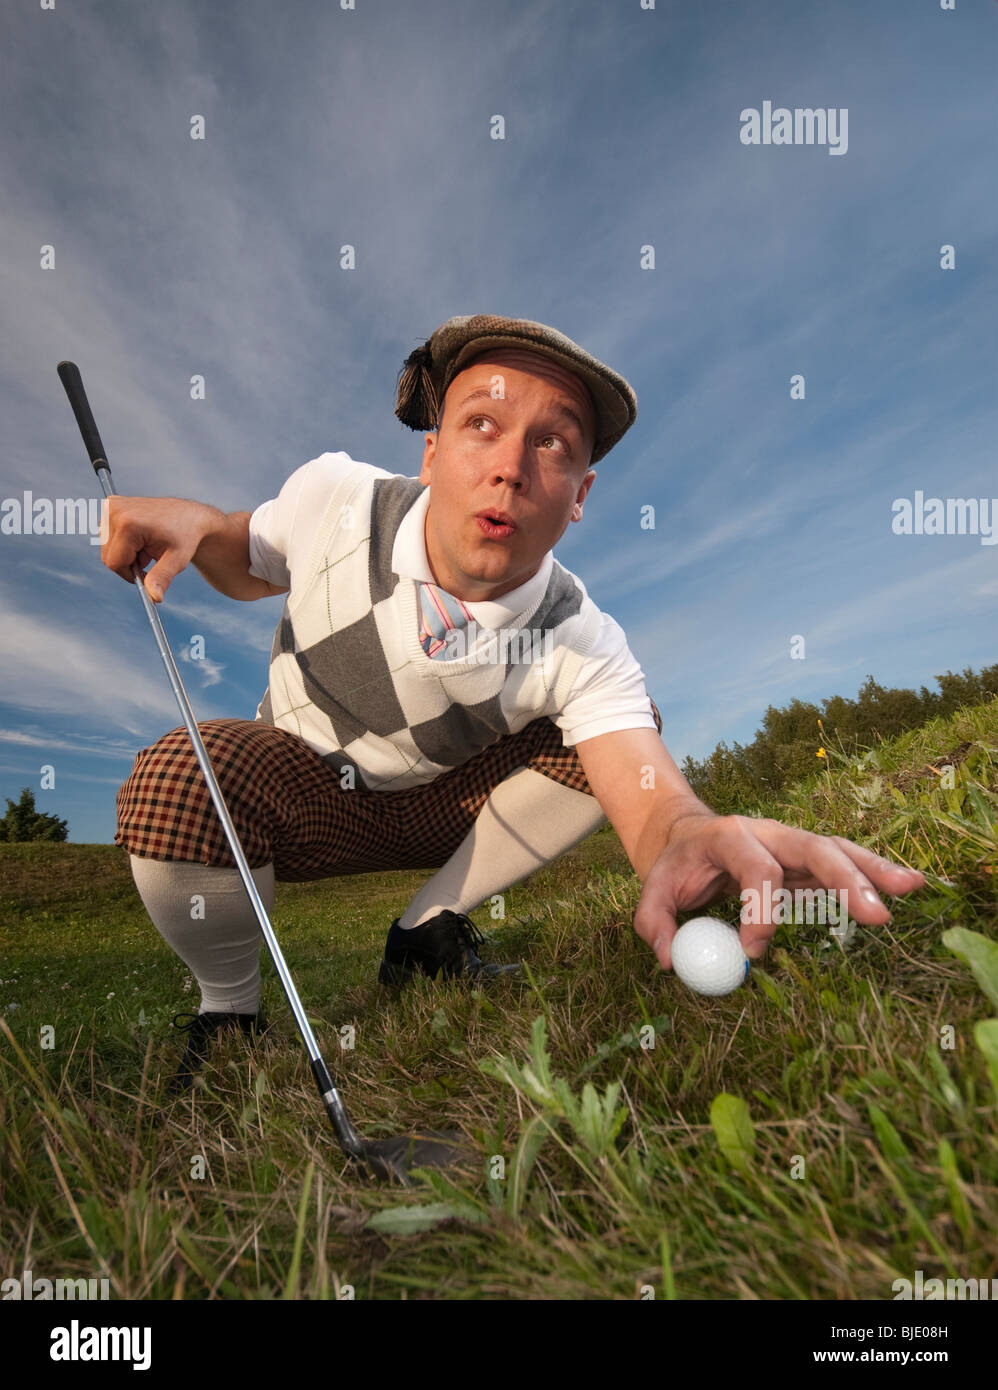 Funny looking golfer cheating and moving the ball when no one sees. - Stock Image